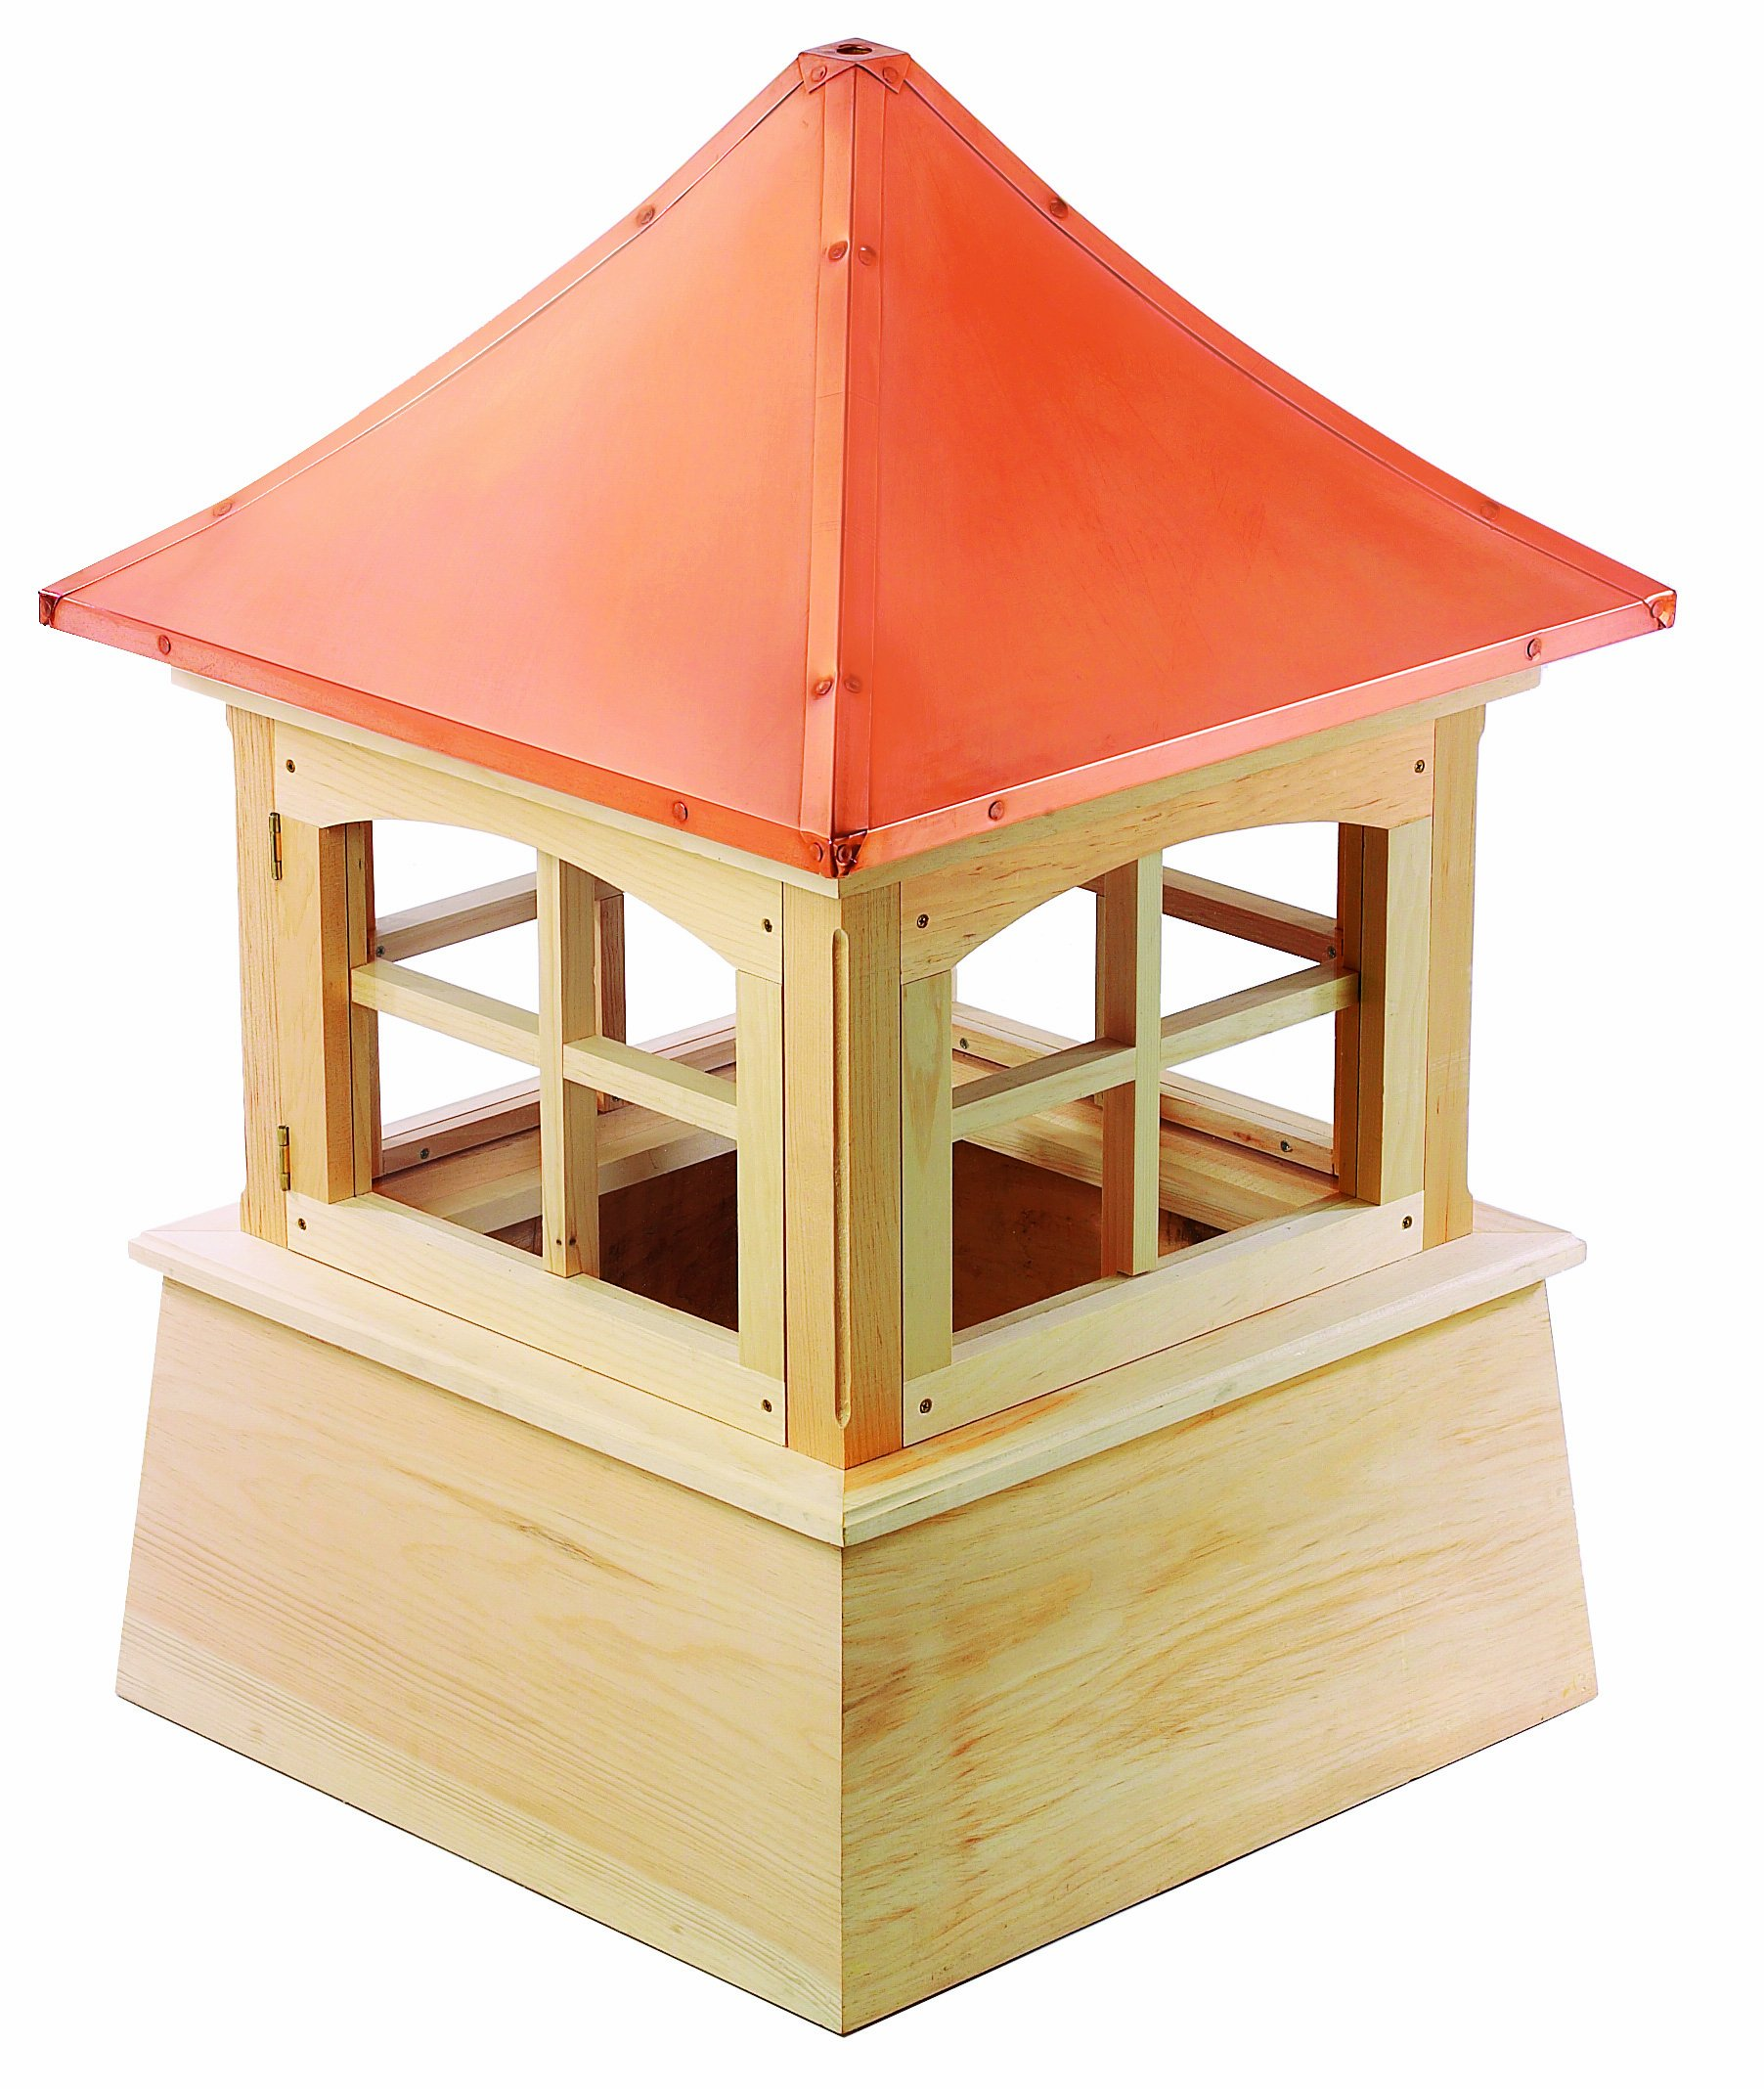 Good Directions Windsor Wood Cupola with Copper Roof, 42'' x 61'' by Good Directions